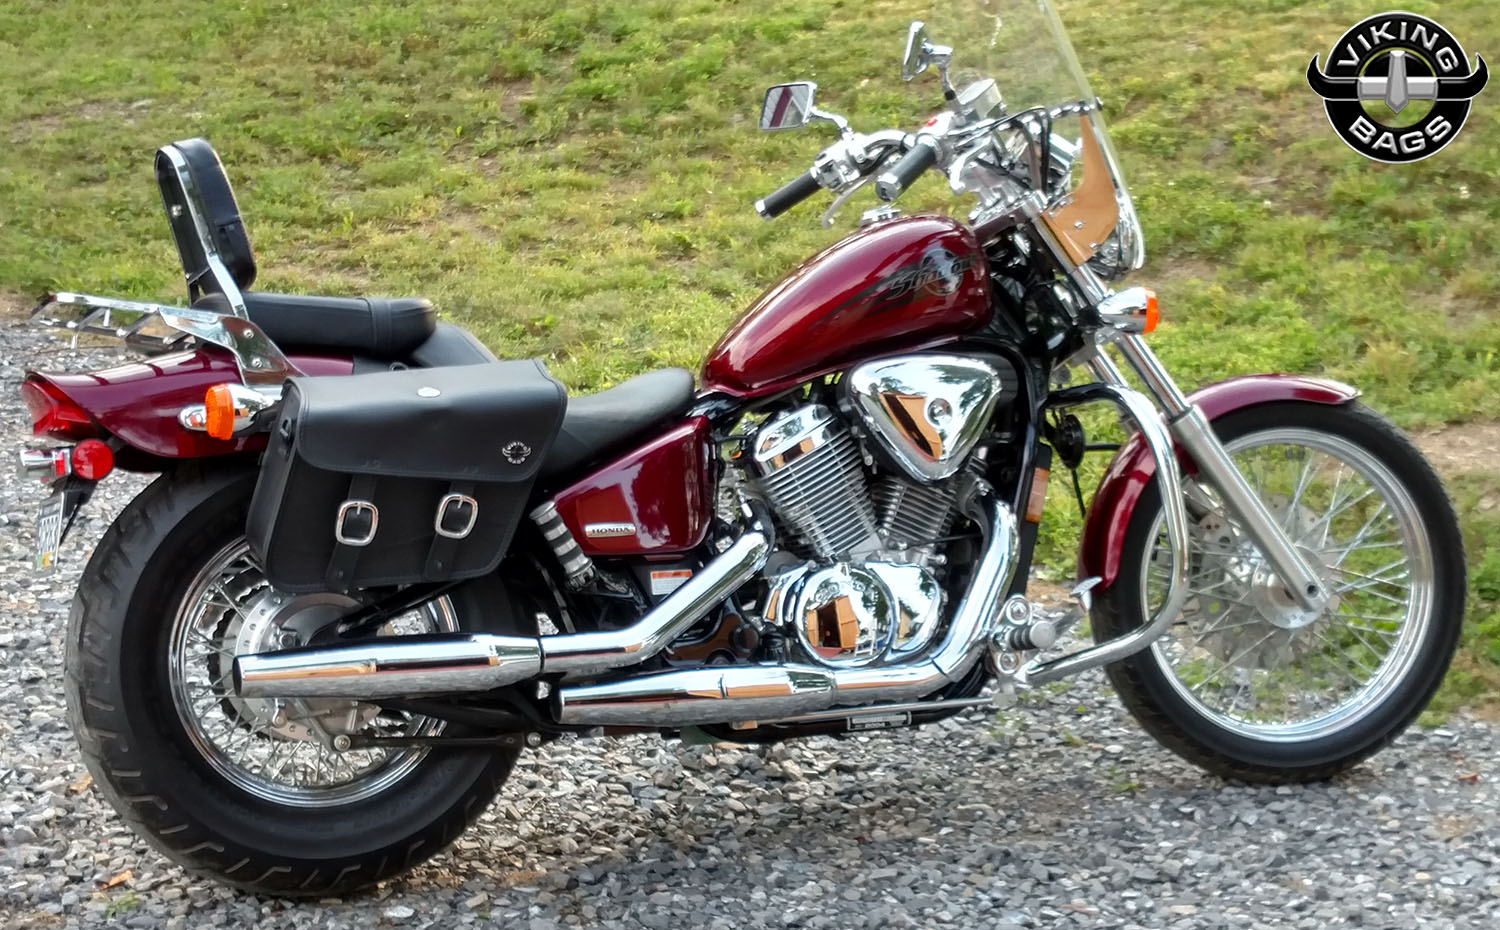 honda 600 shadow vlx motorcycle saddlebags small thor. Black Bedroom Furniture Sets. Home Design Ideas